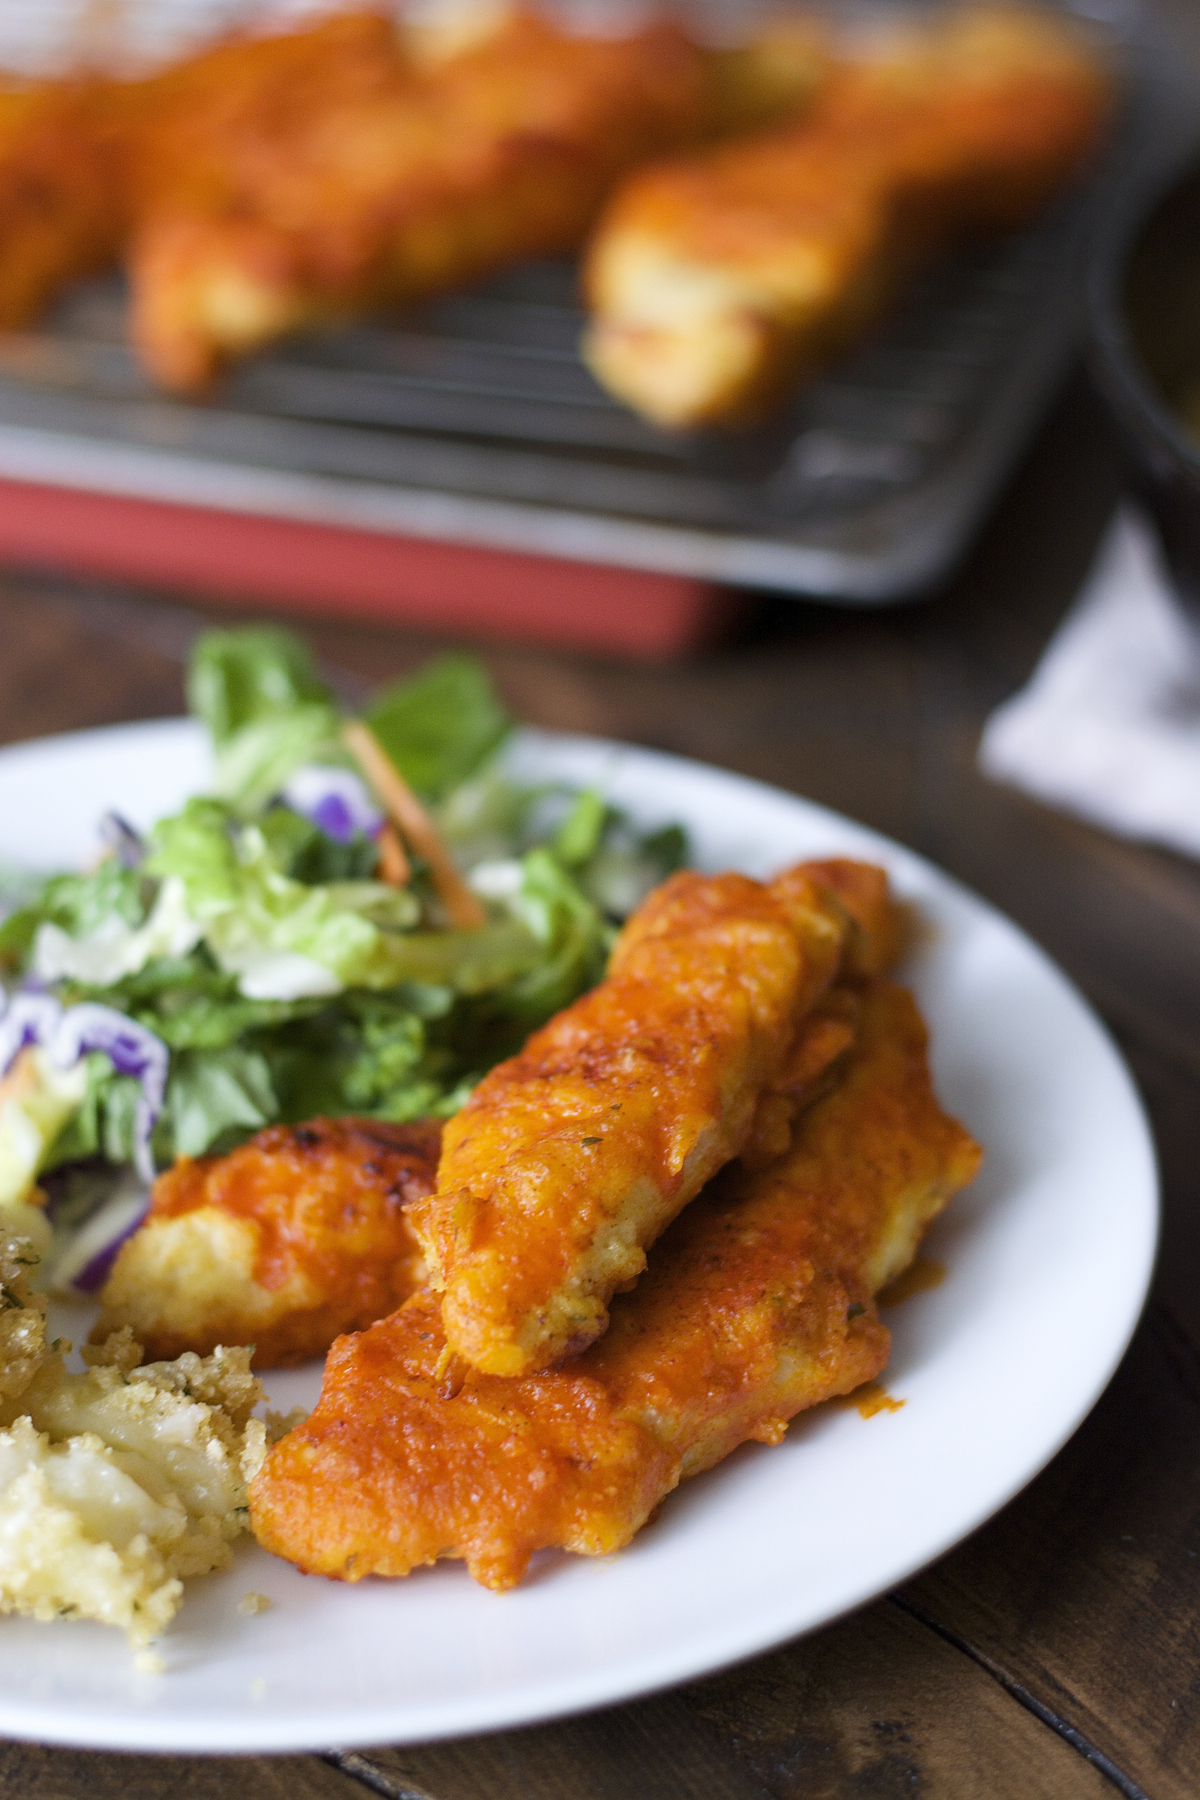 buffalo chicken tenders on a plate with side salad and mashed potatoes. More tenders rest in the background.